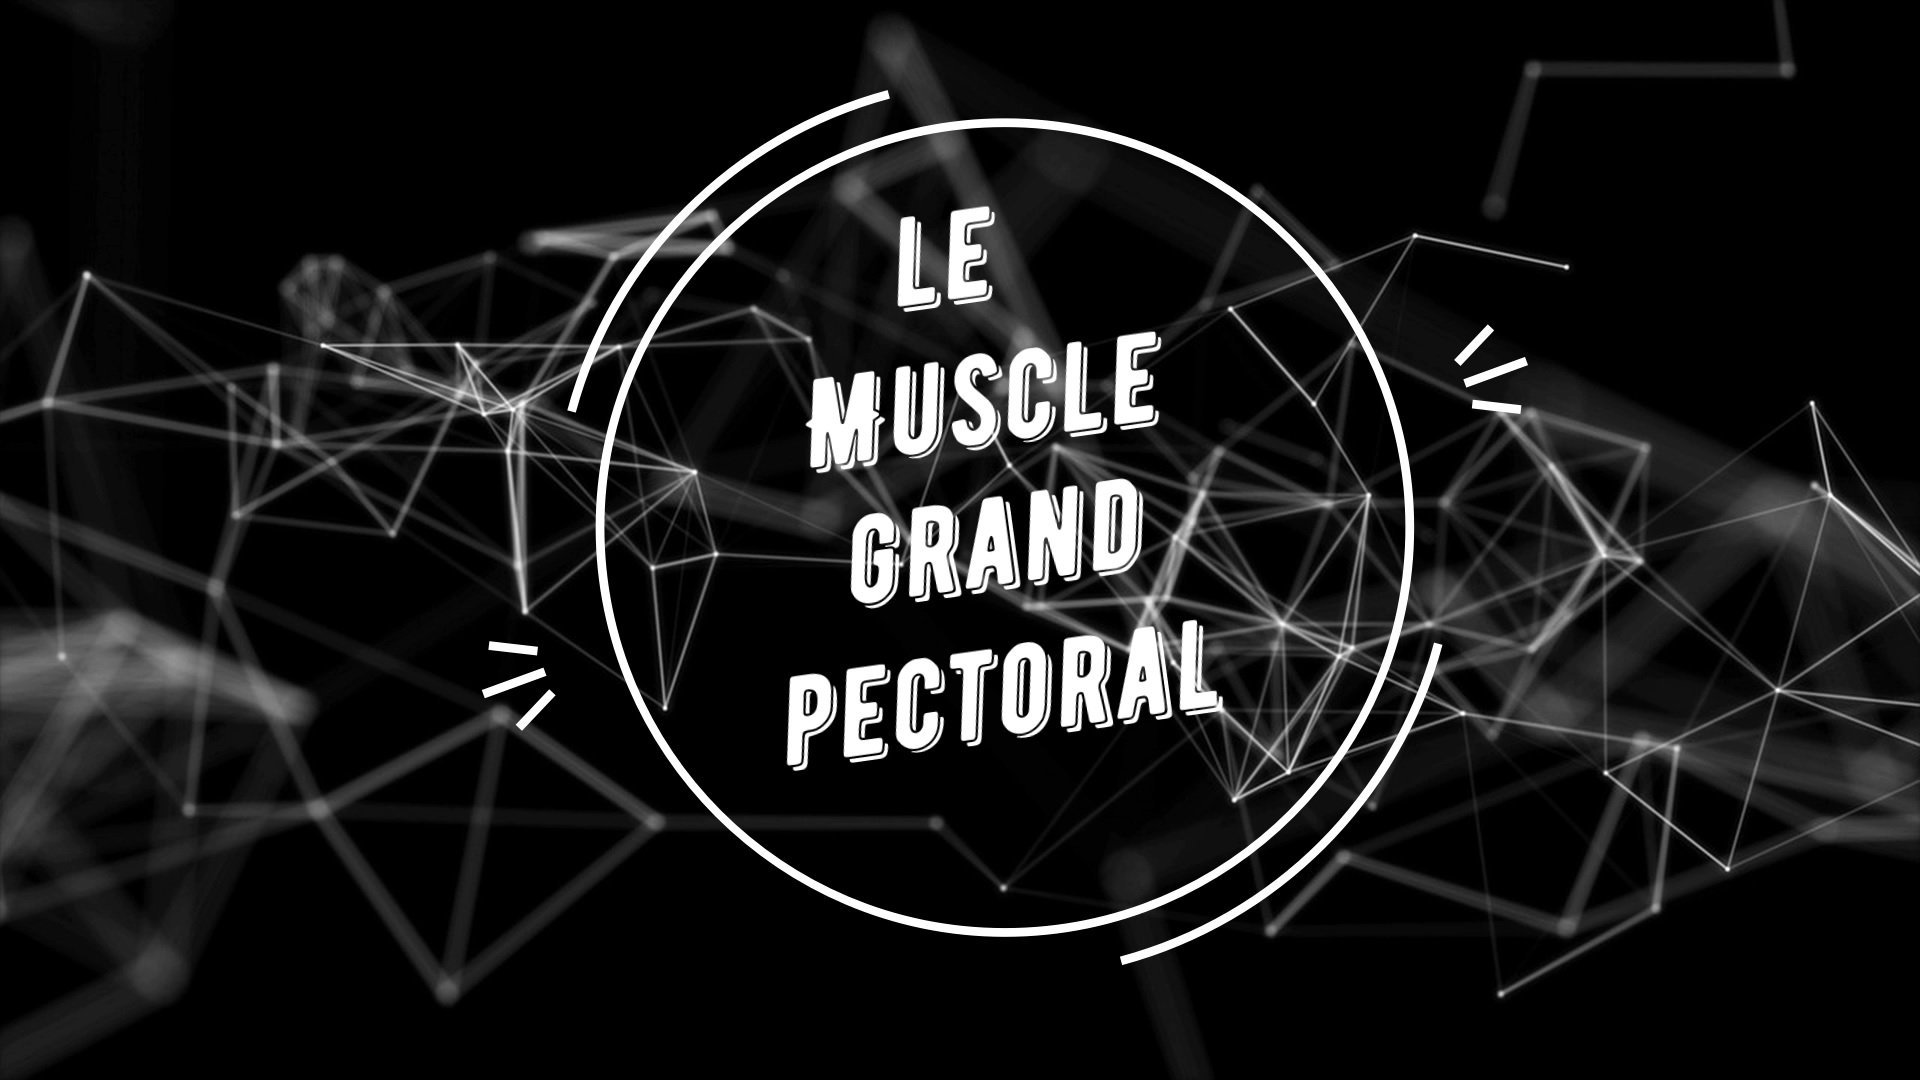 Étirement passif du muscle grand pectoral